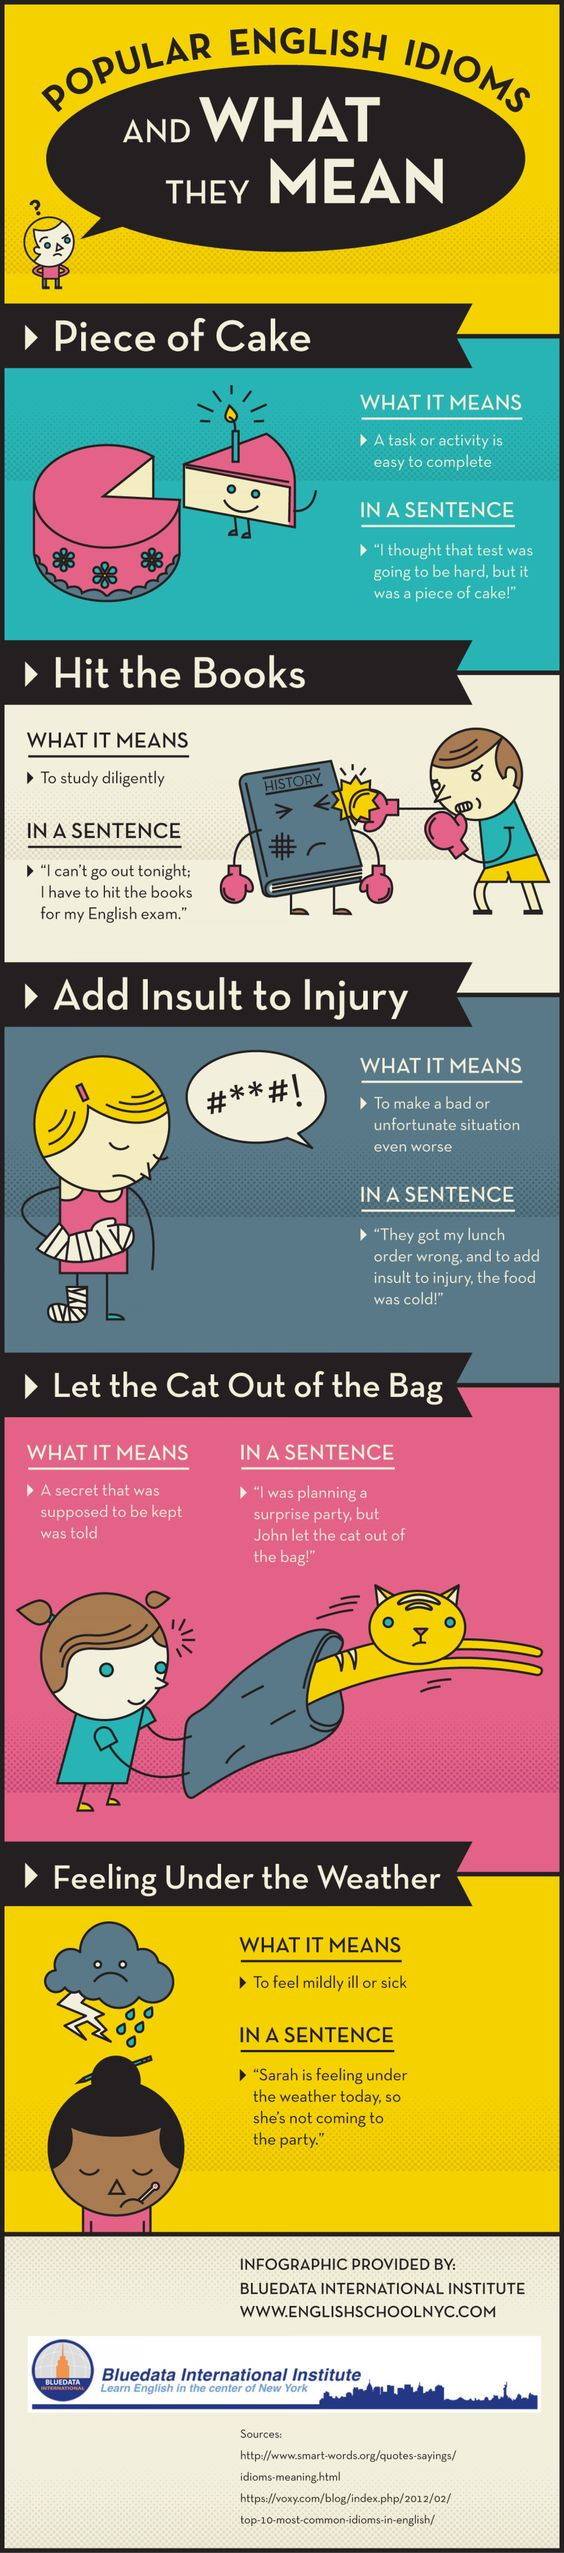 Popular English Idioms and What They Mean Infographic: